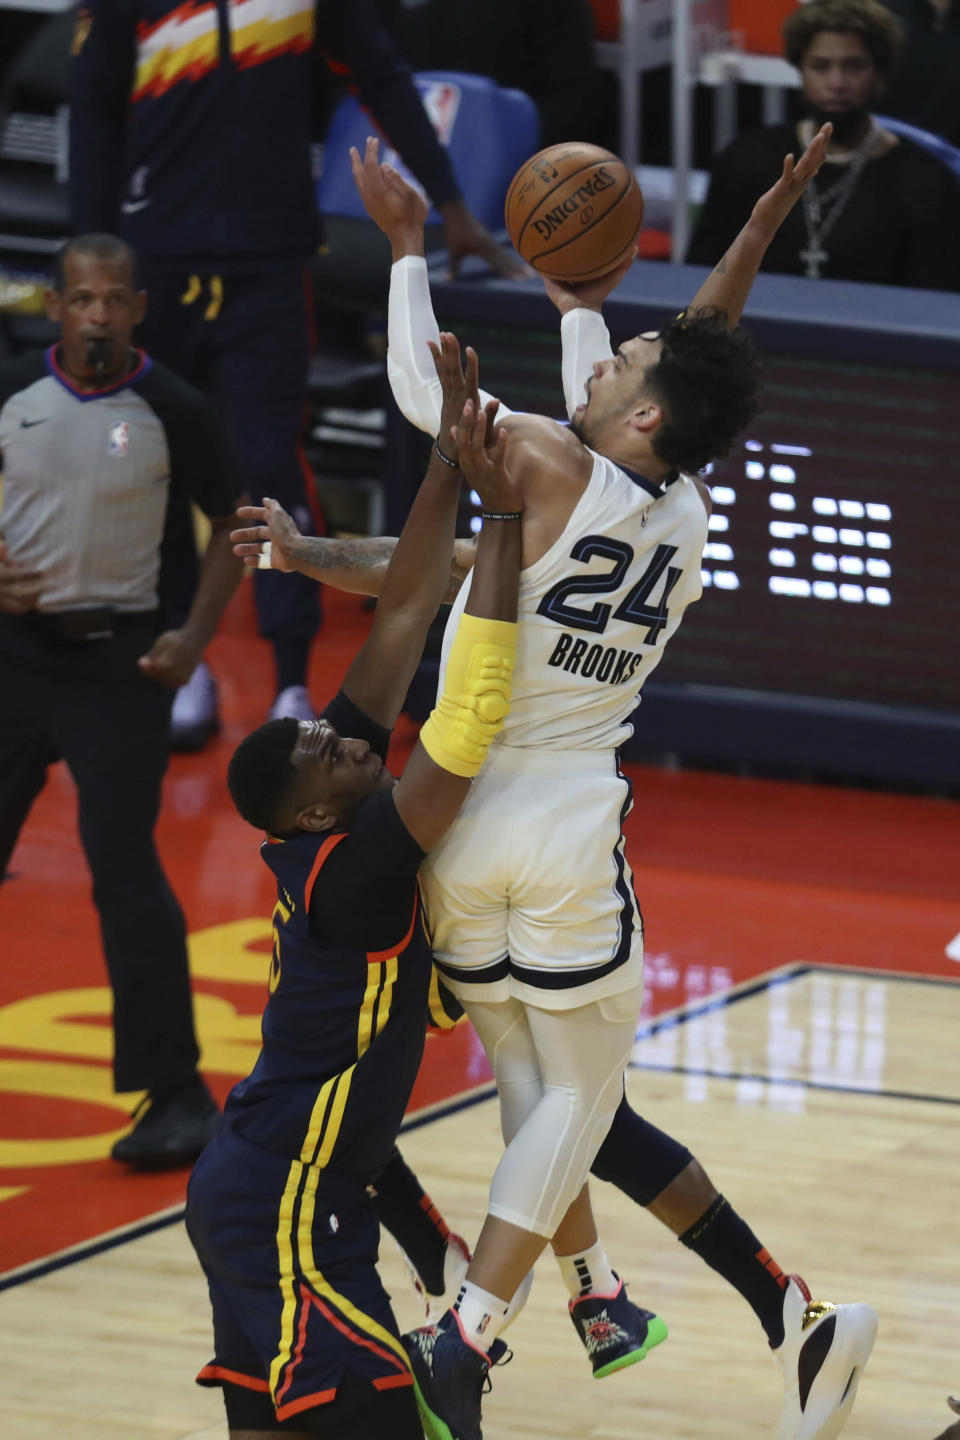 Memphis Grizzlies' Dillon Brooks (24) shoots against Golden State Warriors' Kevon Looney during the first half of an NBA basketball Western Conference play-in game in San Francisco, Friday, May 21, 2021. (AP Photo/Jed Jacobsohn)